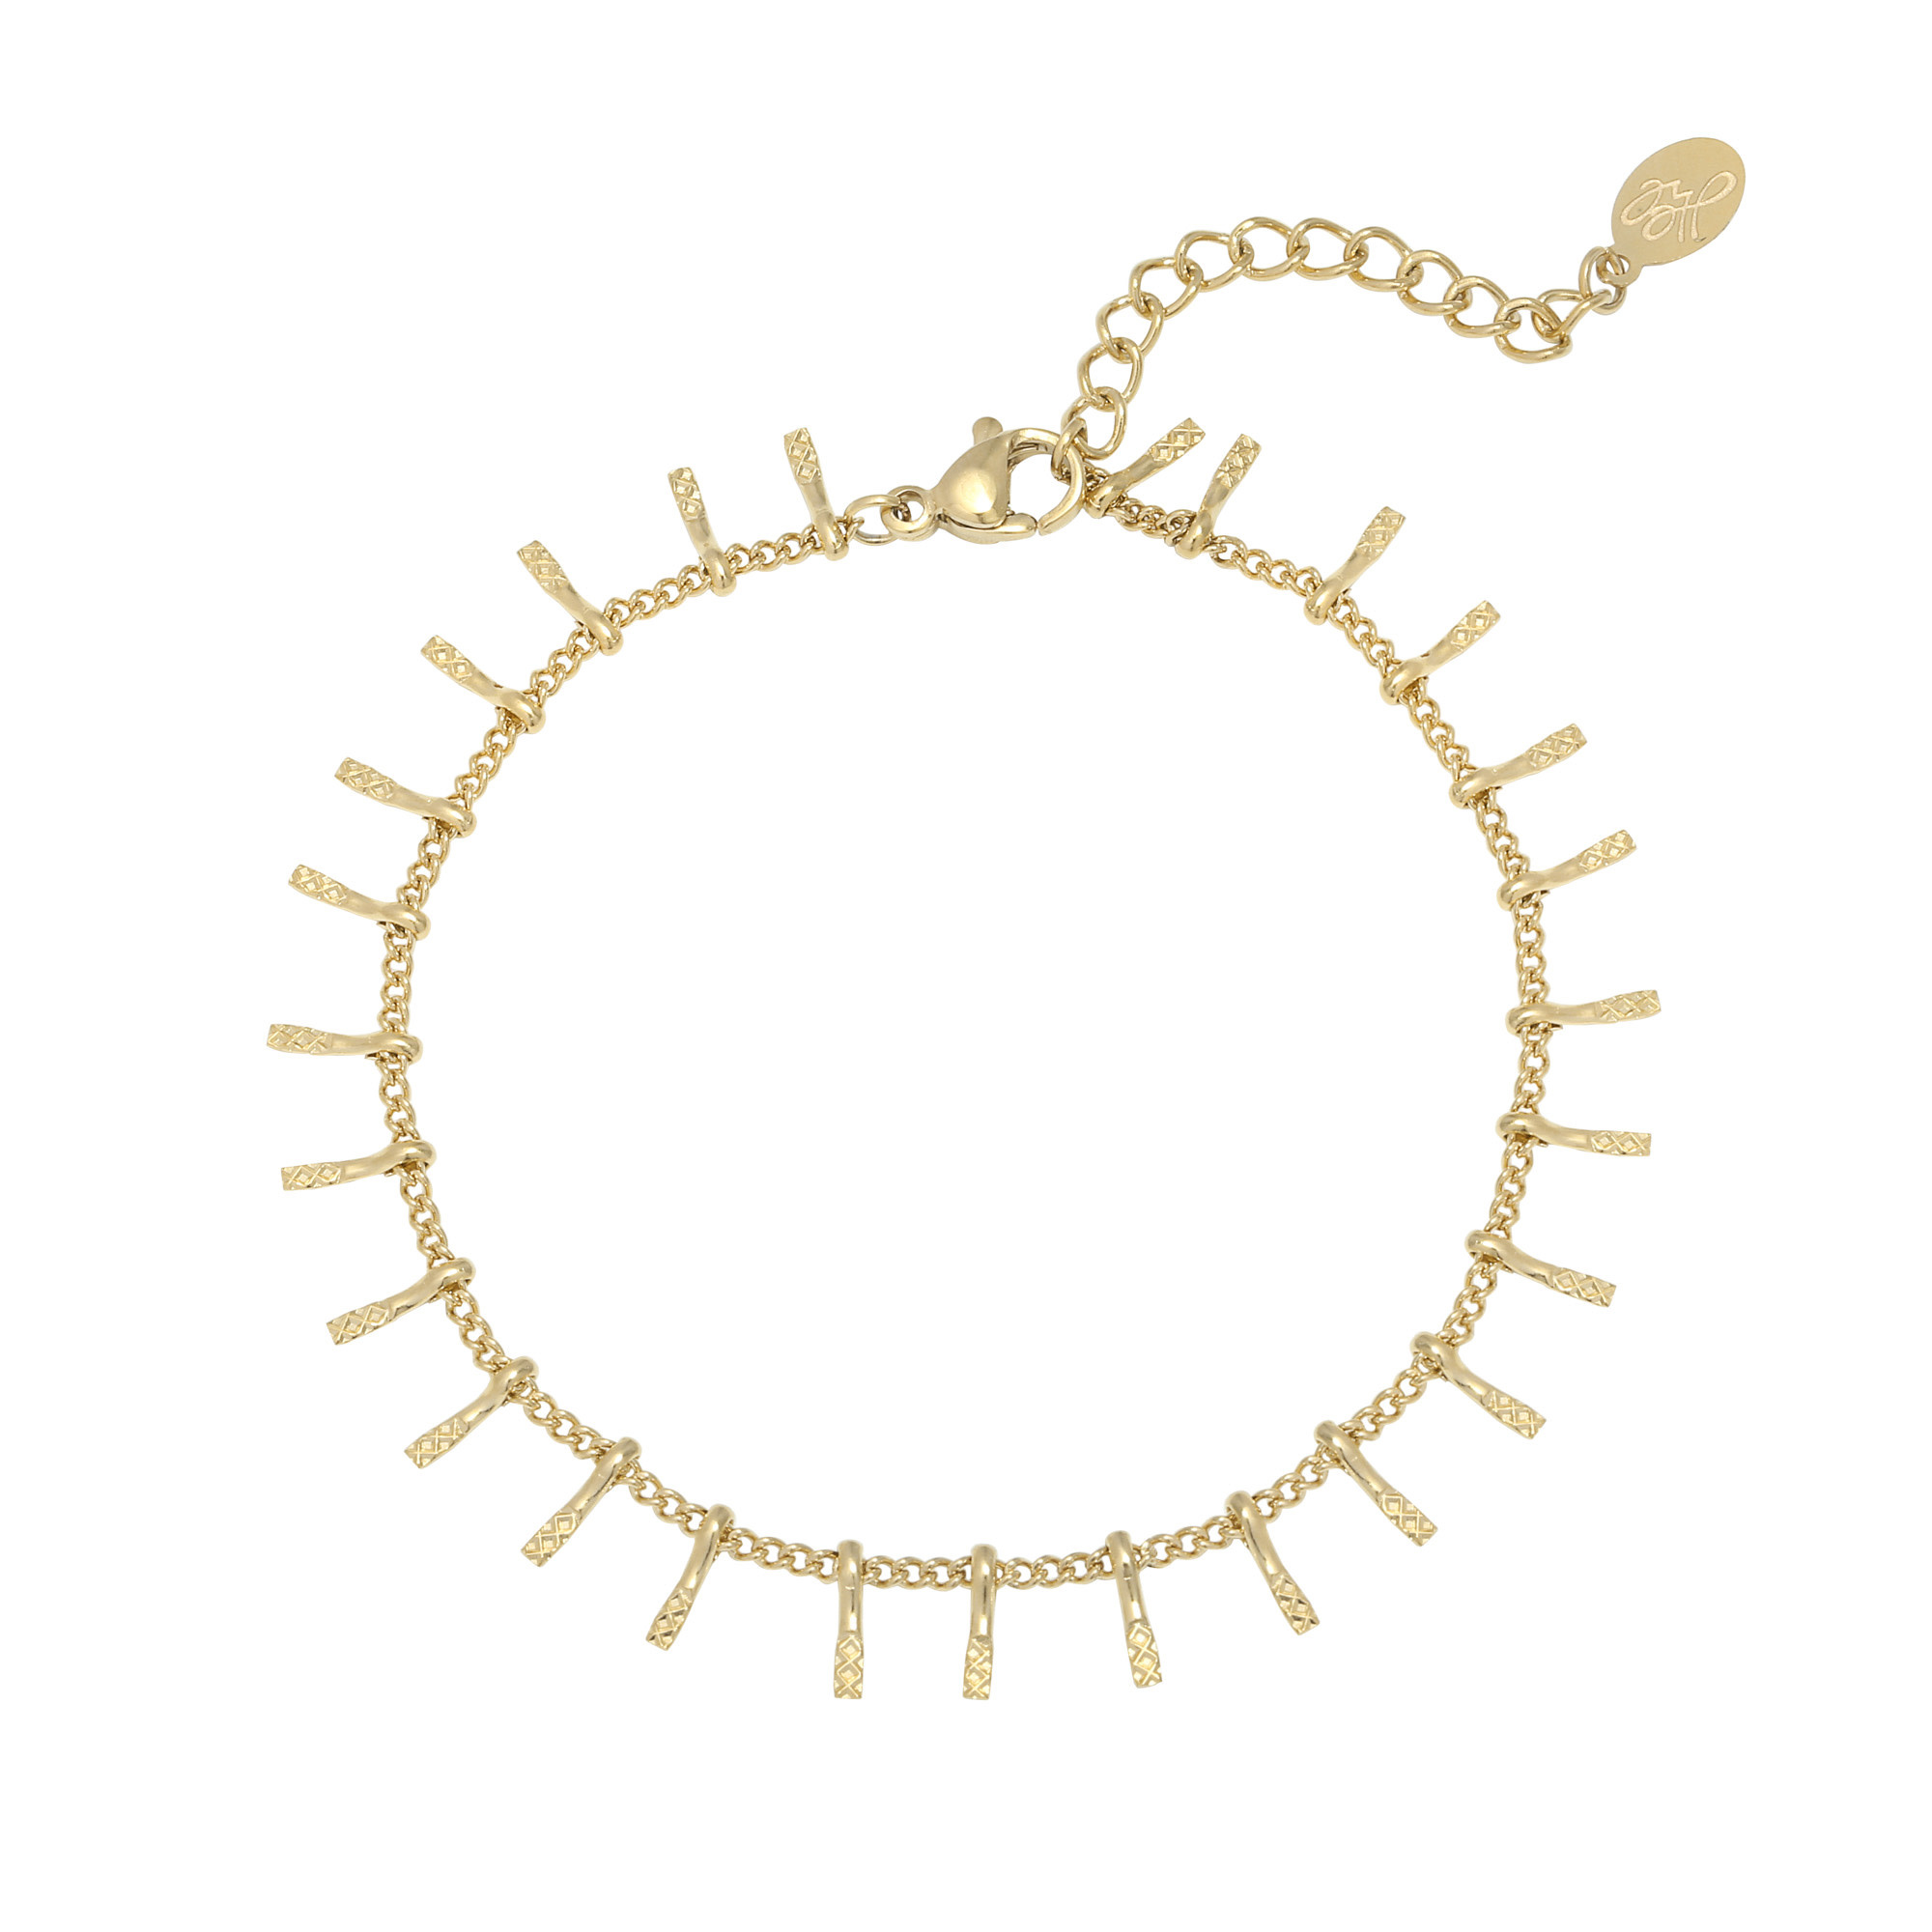 With love Bracelet gold - Go to the bar